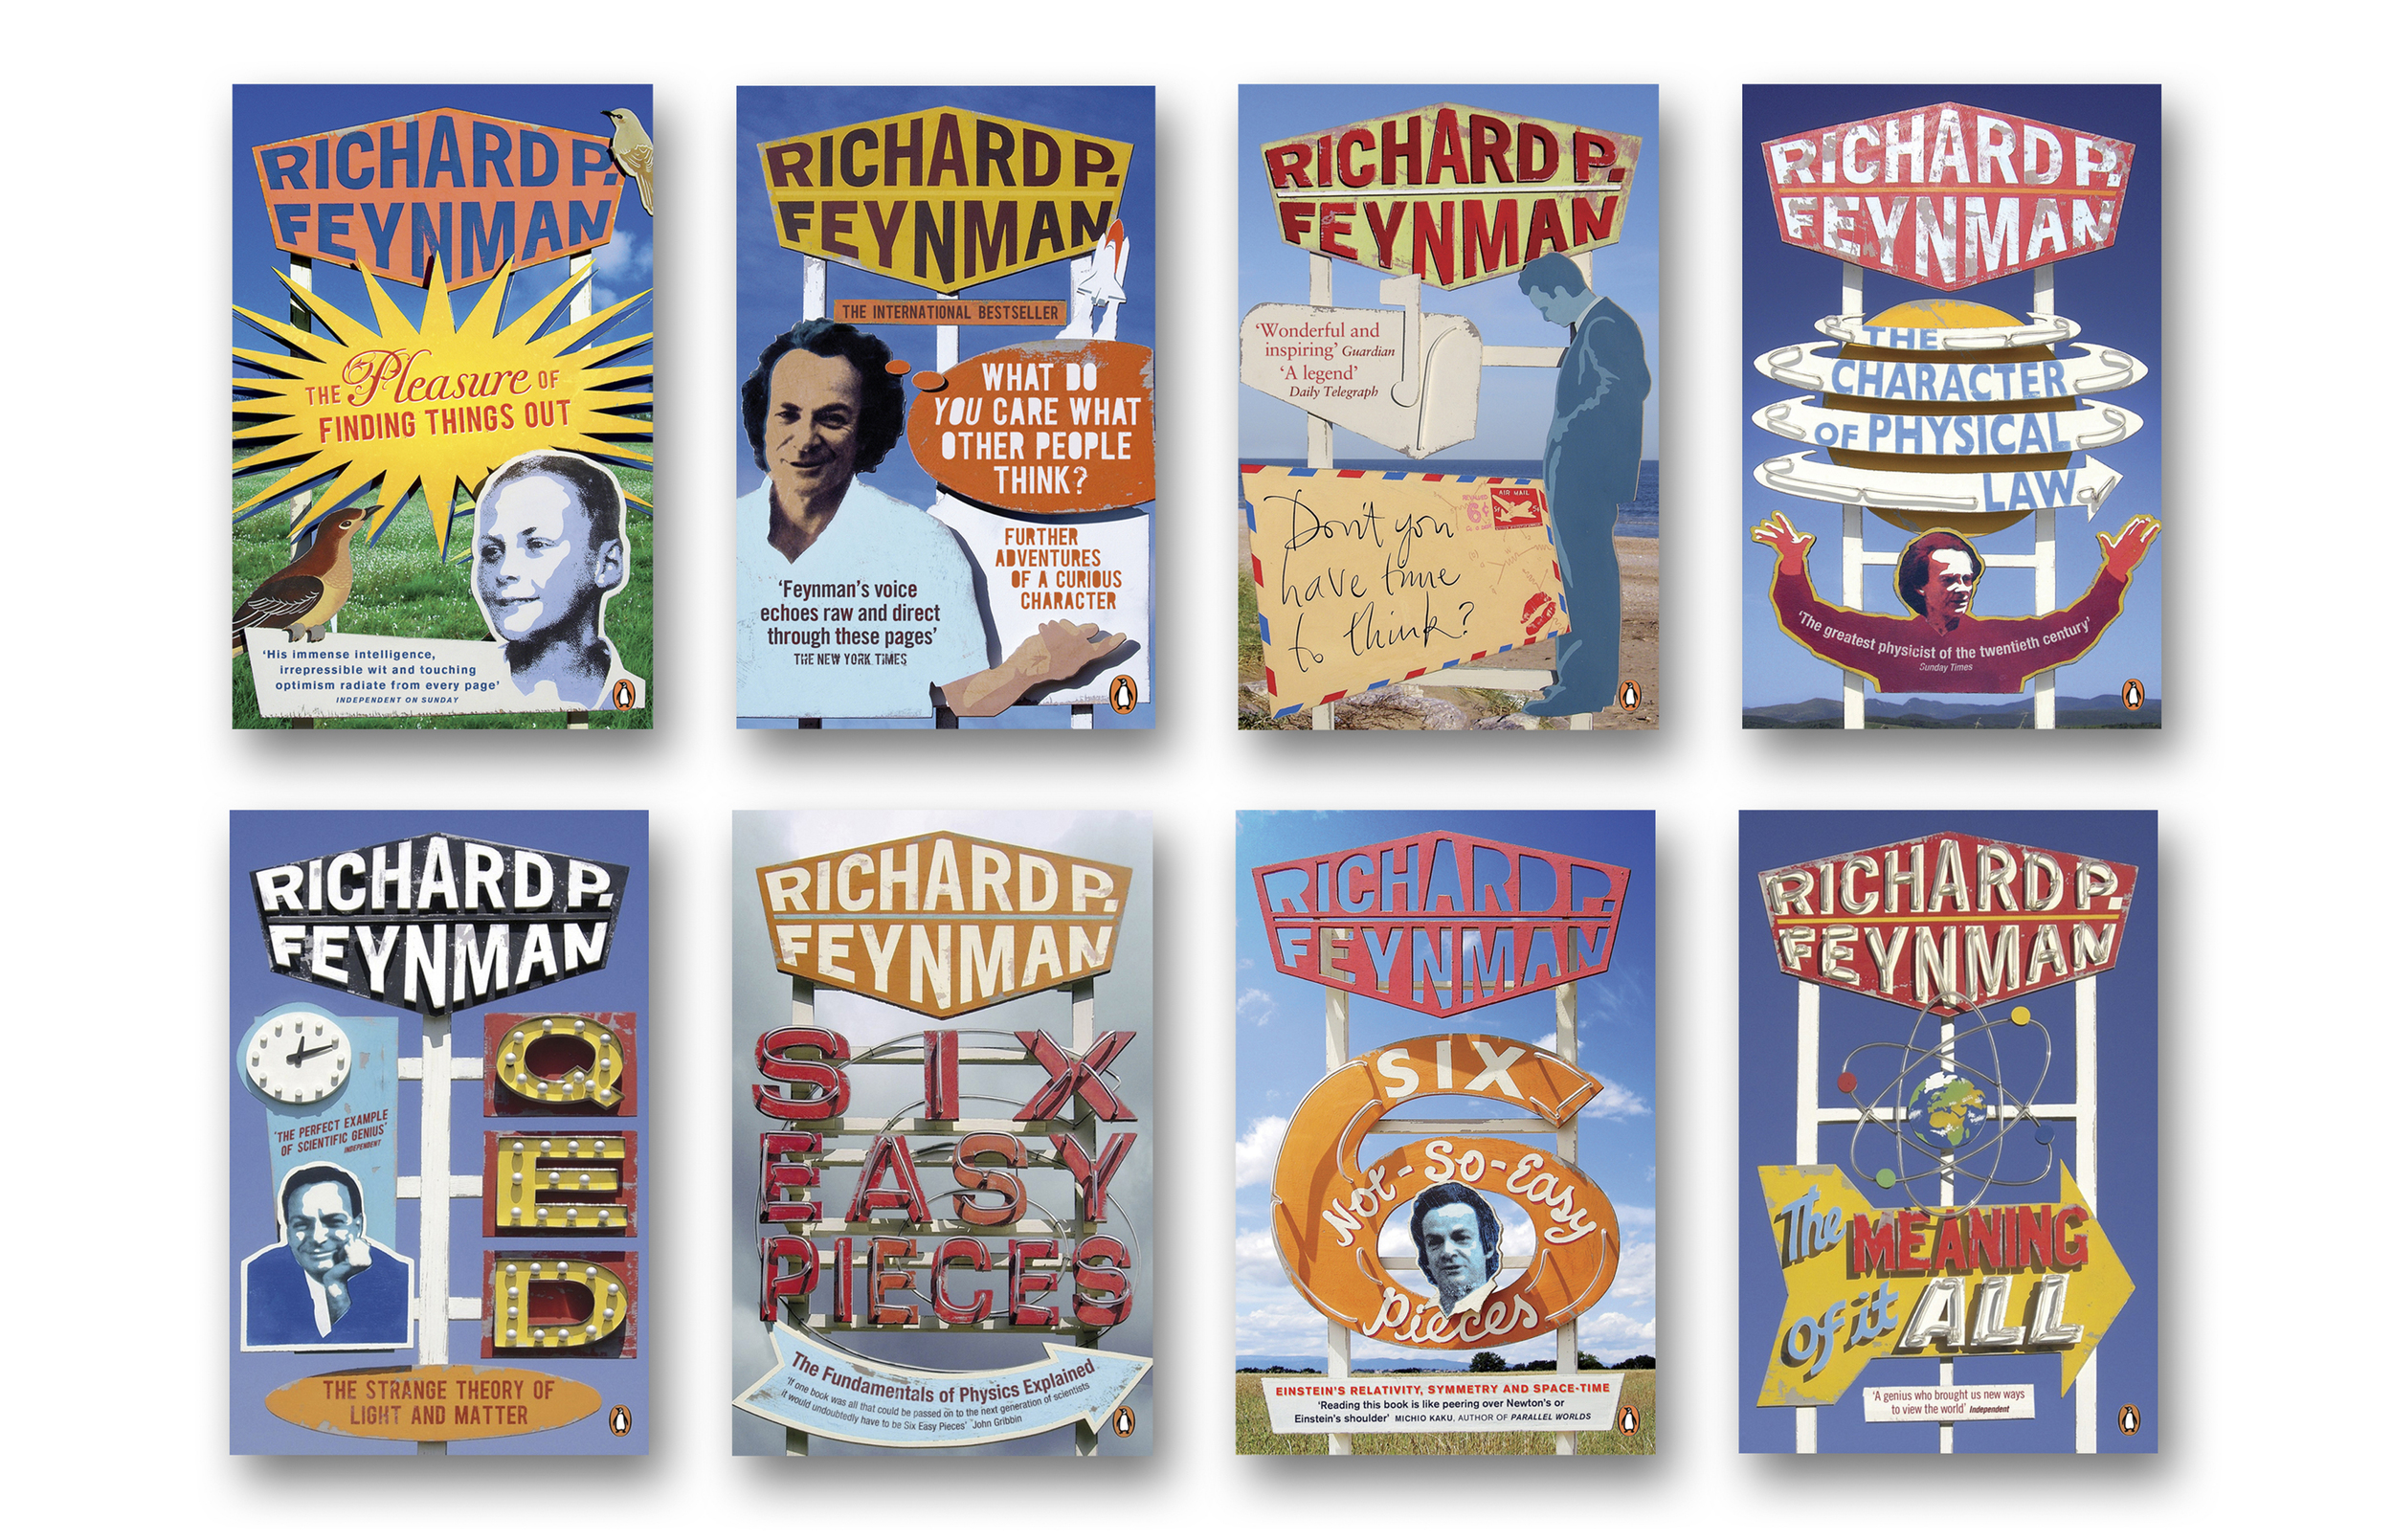 Richard Feynman series - Art Direction & design: Jim Stoddart Model design & construction: Andy Bridge